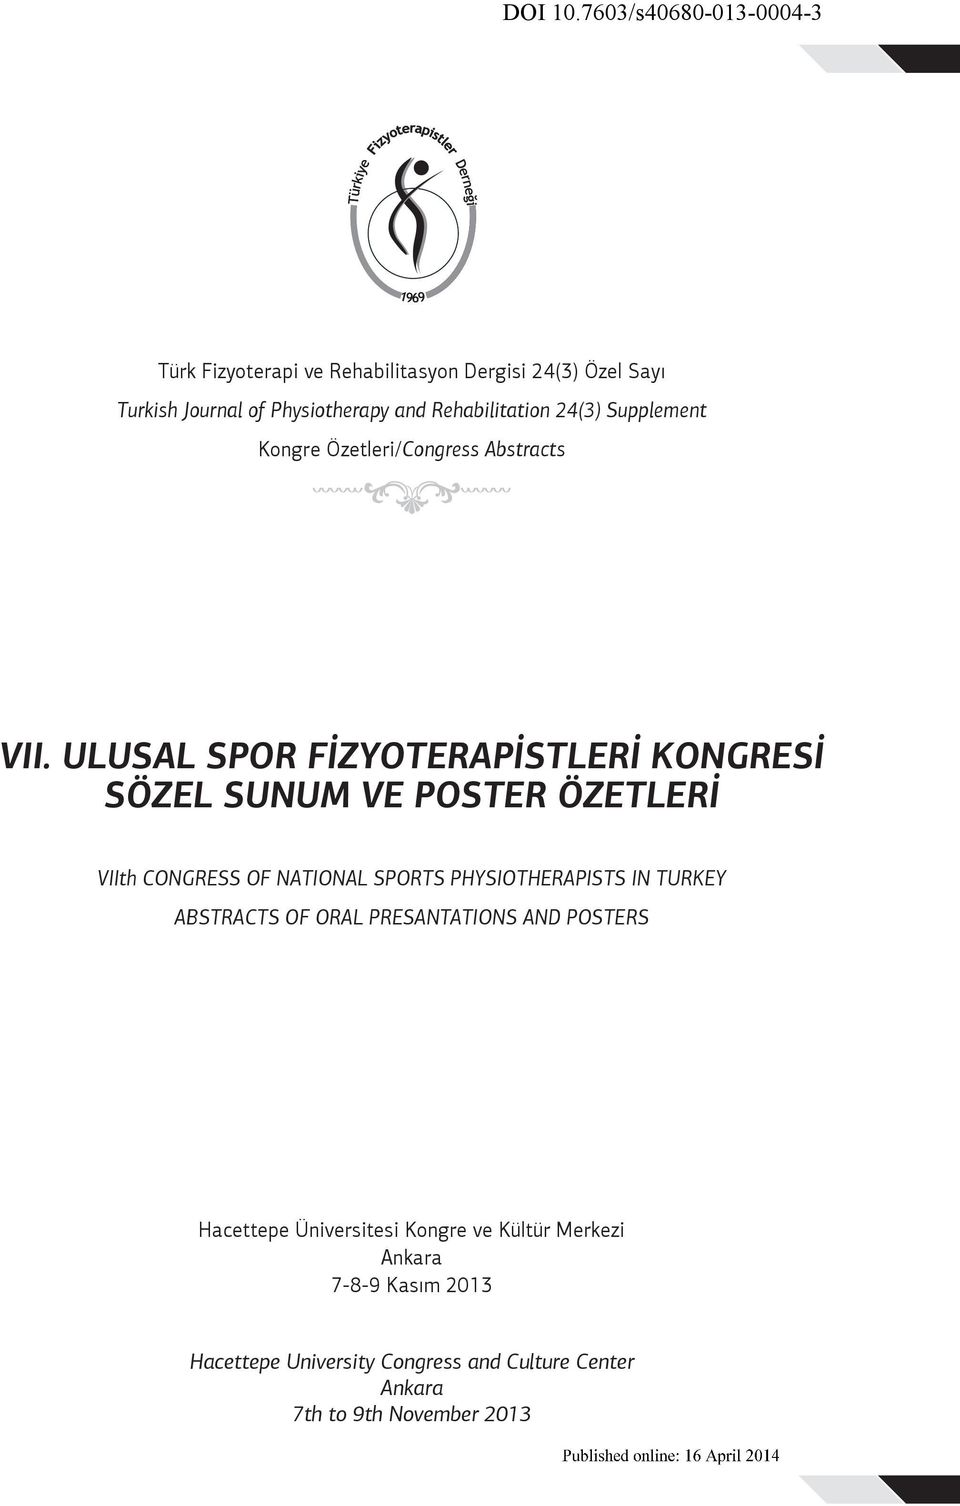 Rehabilitation 4(3) Supplement Kongre Özetleri/Congress Abstracts SÖZEL SUNUM VE POSTER ÖZETLERİ VIIth CONGRESS OF